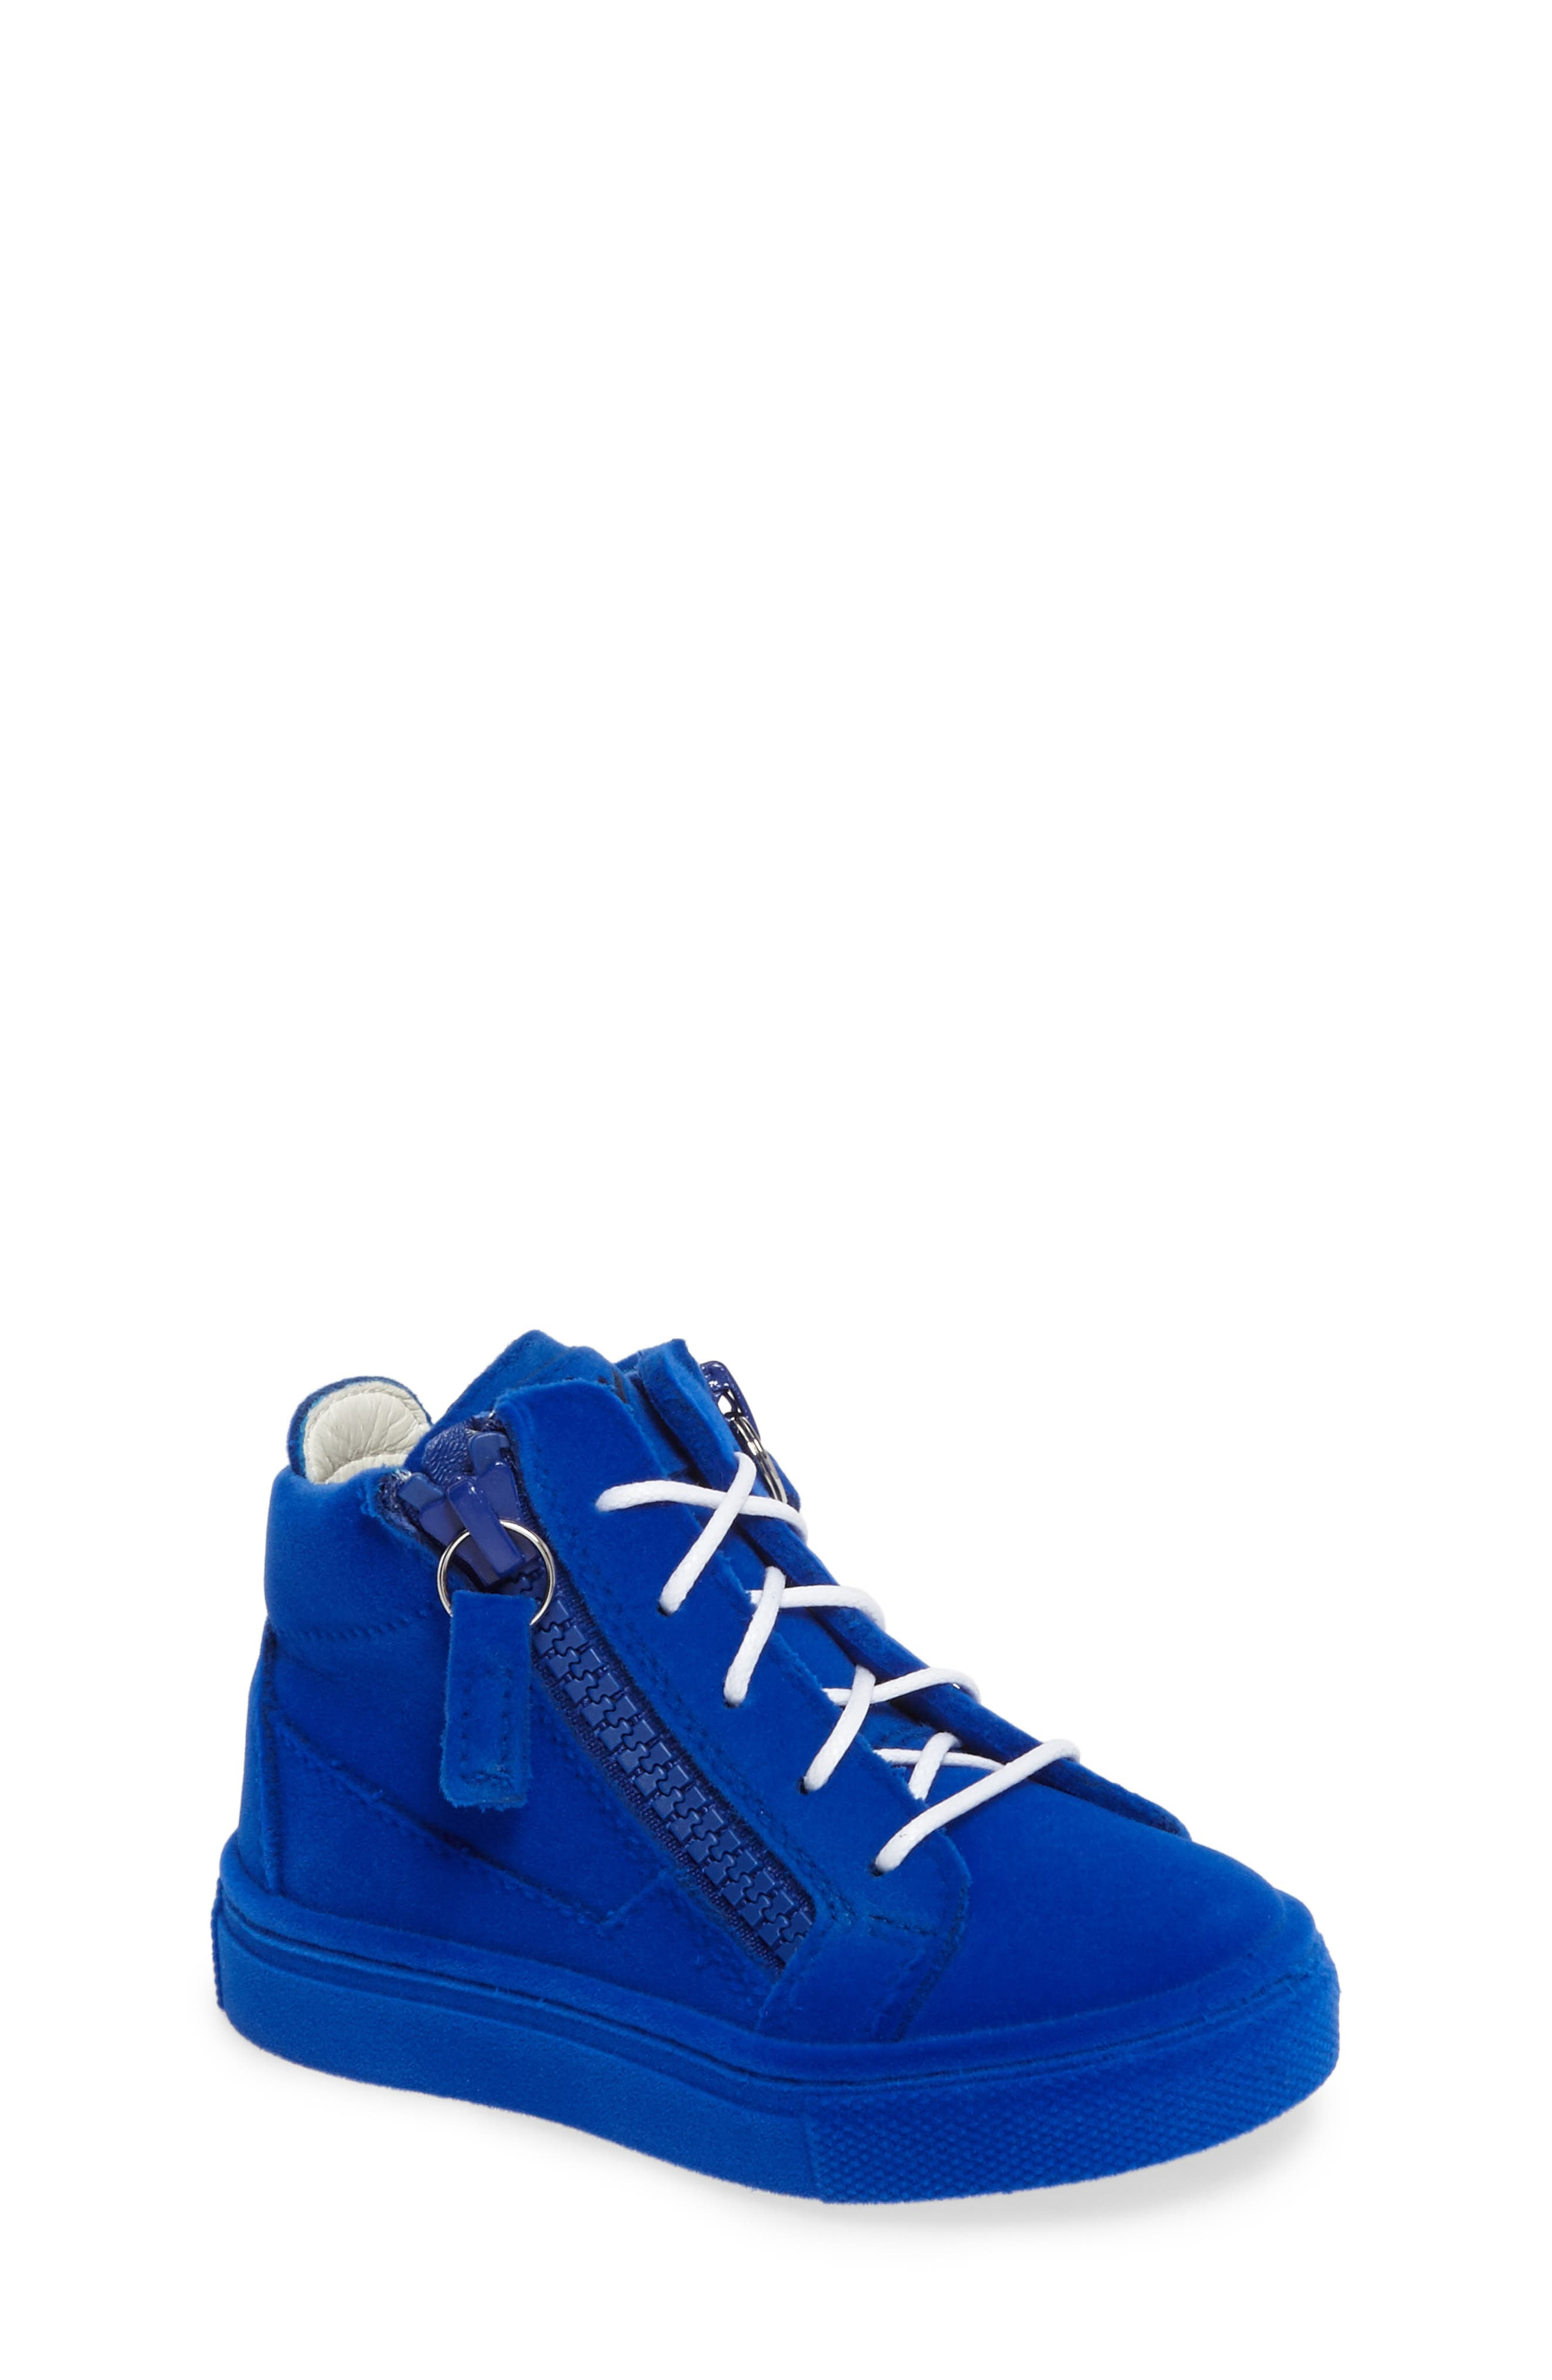 Main Image - Giuseppe Zanotti Smuggy Sneaker (Baby, Walker, Toddler & Little Kid)